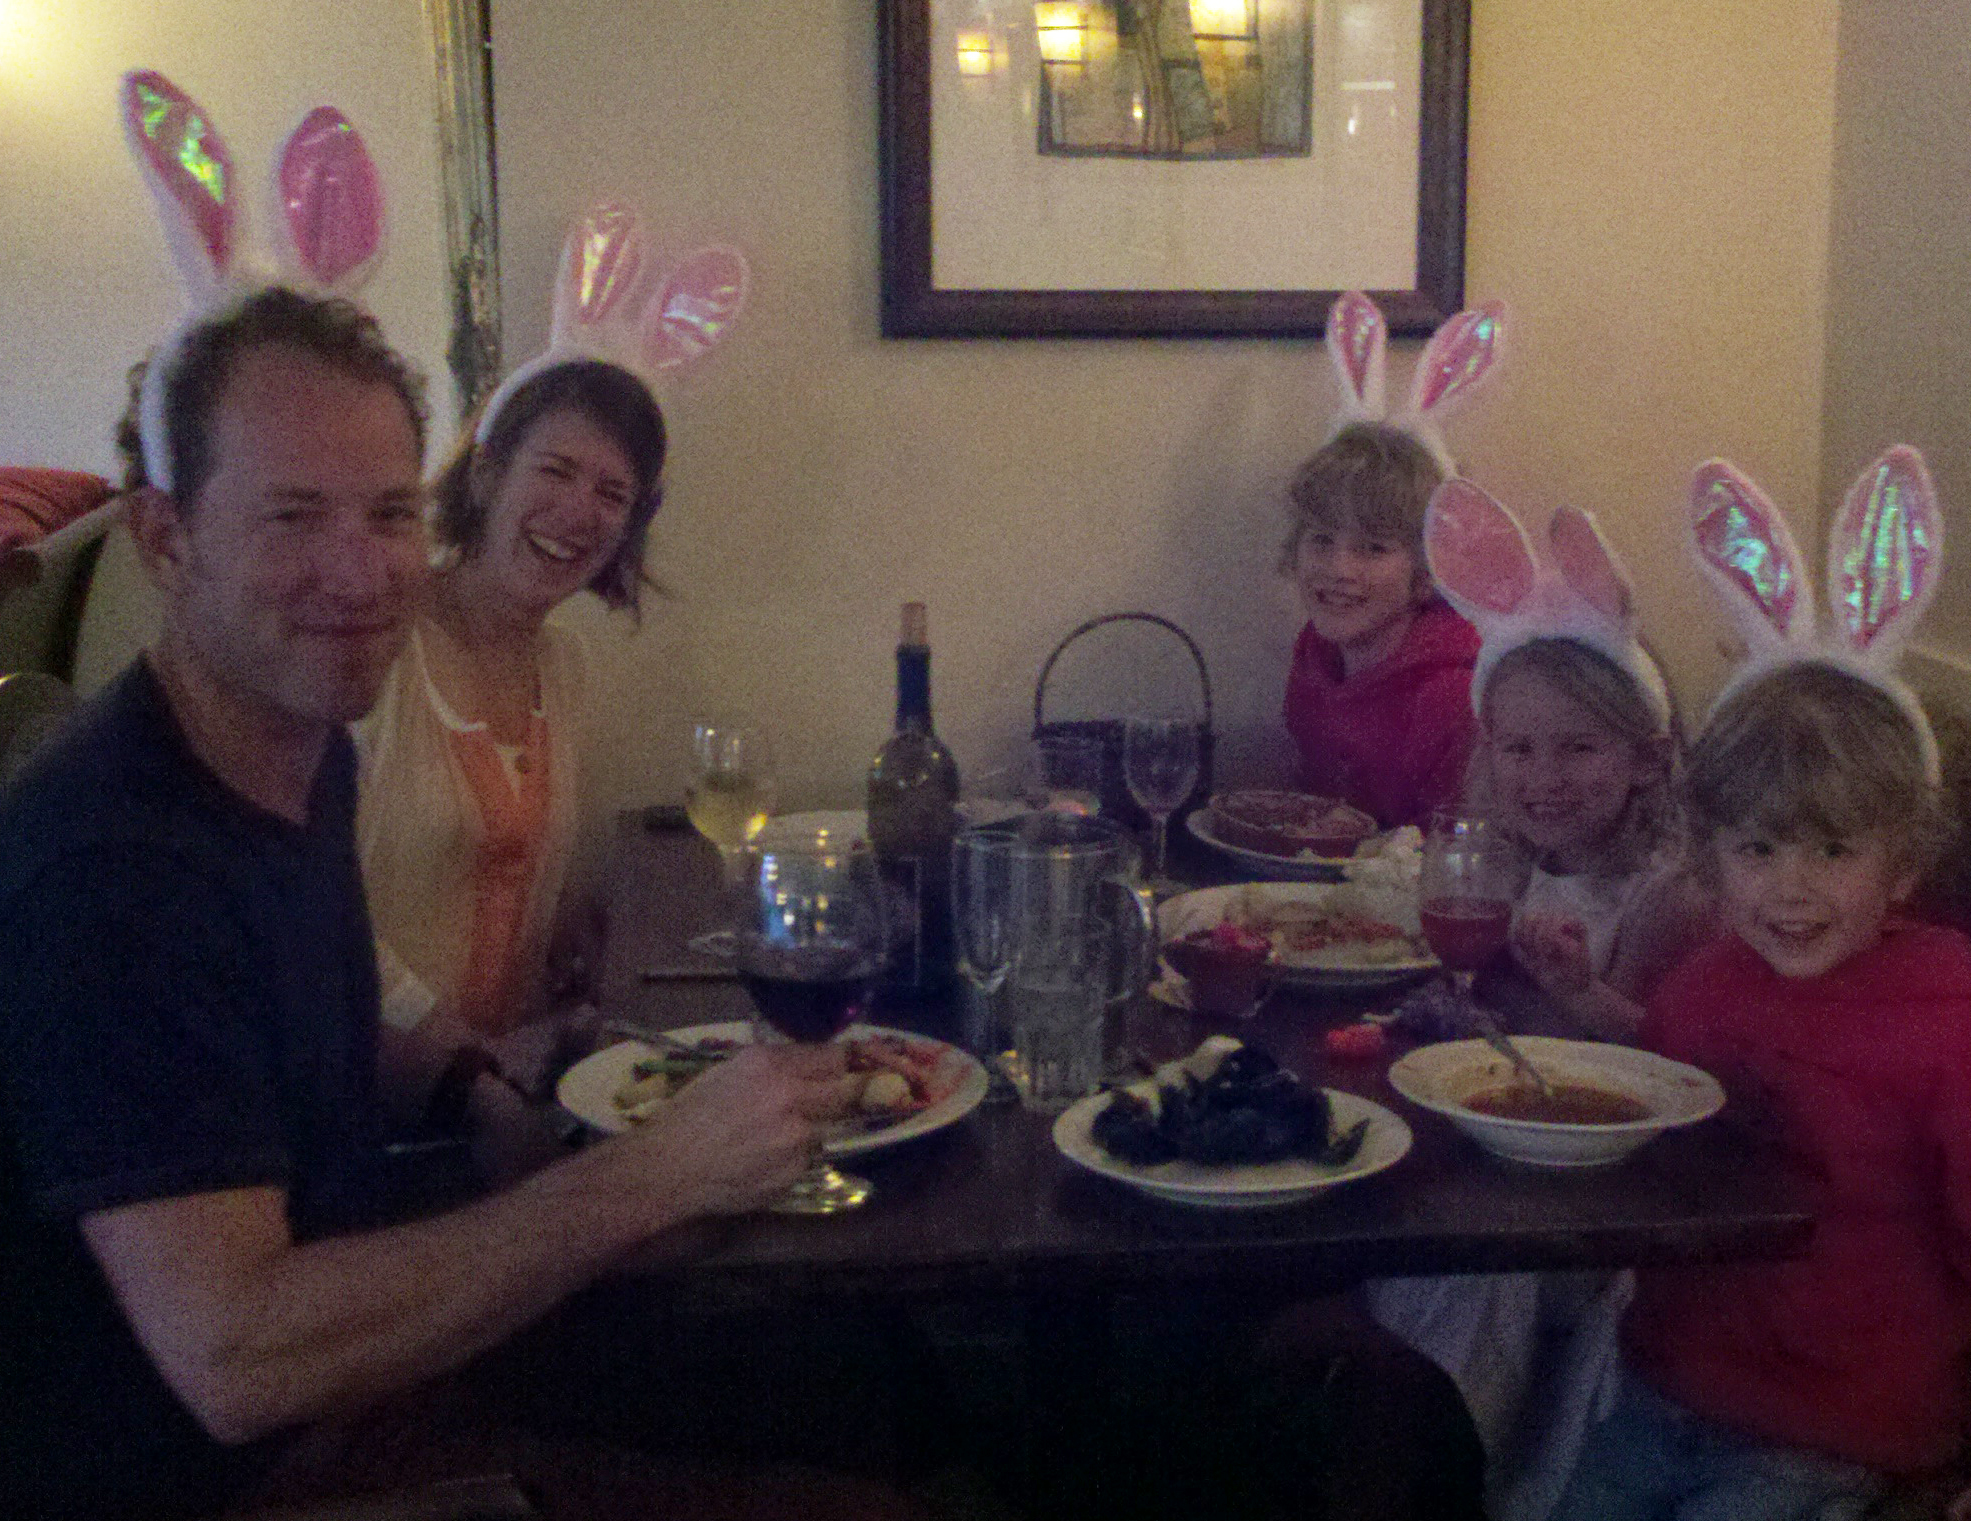 Look Family loves Easter Dinner